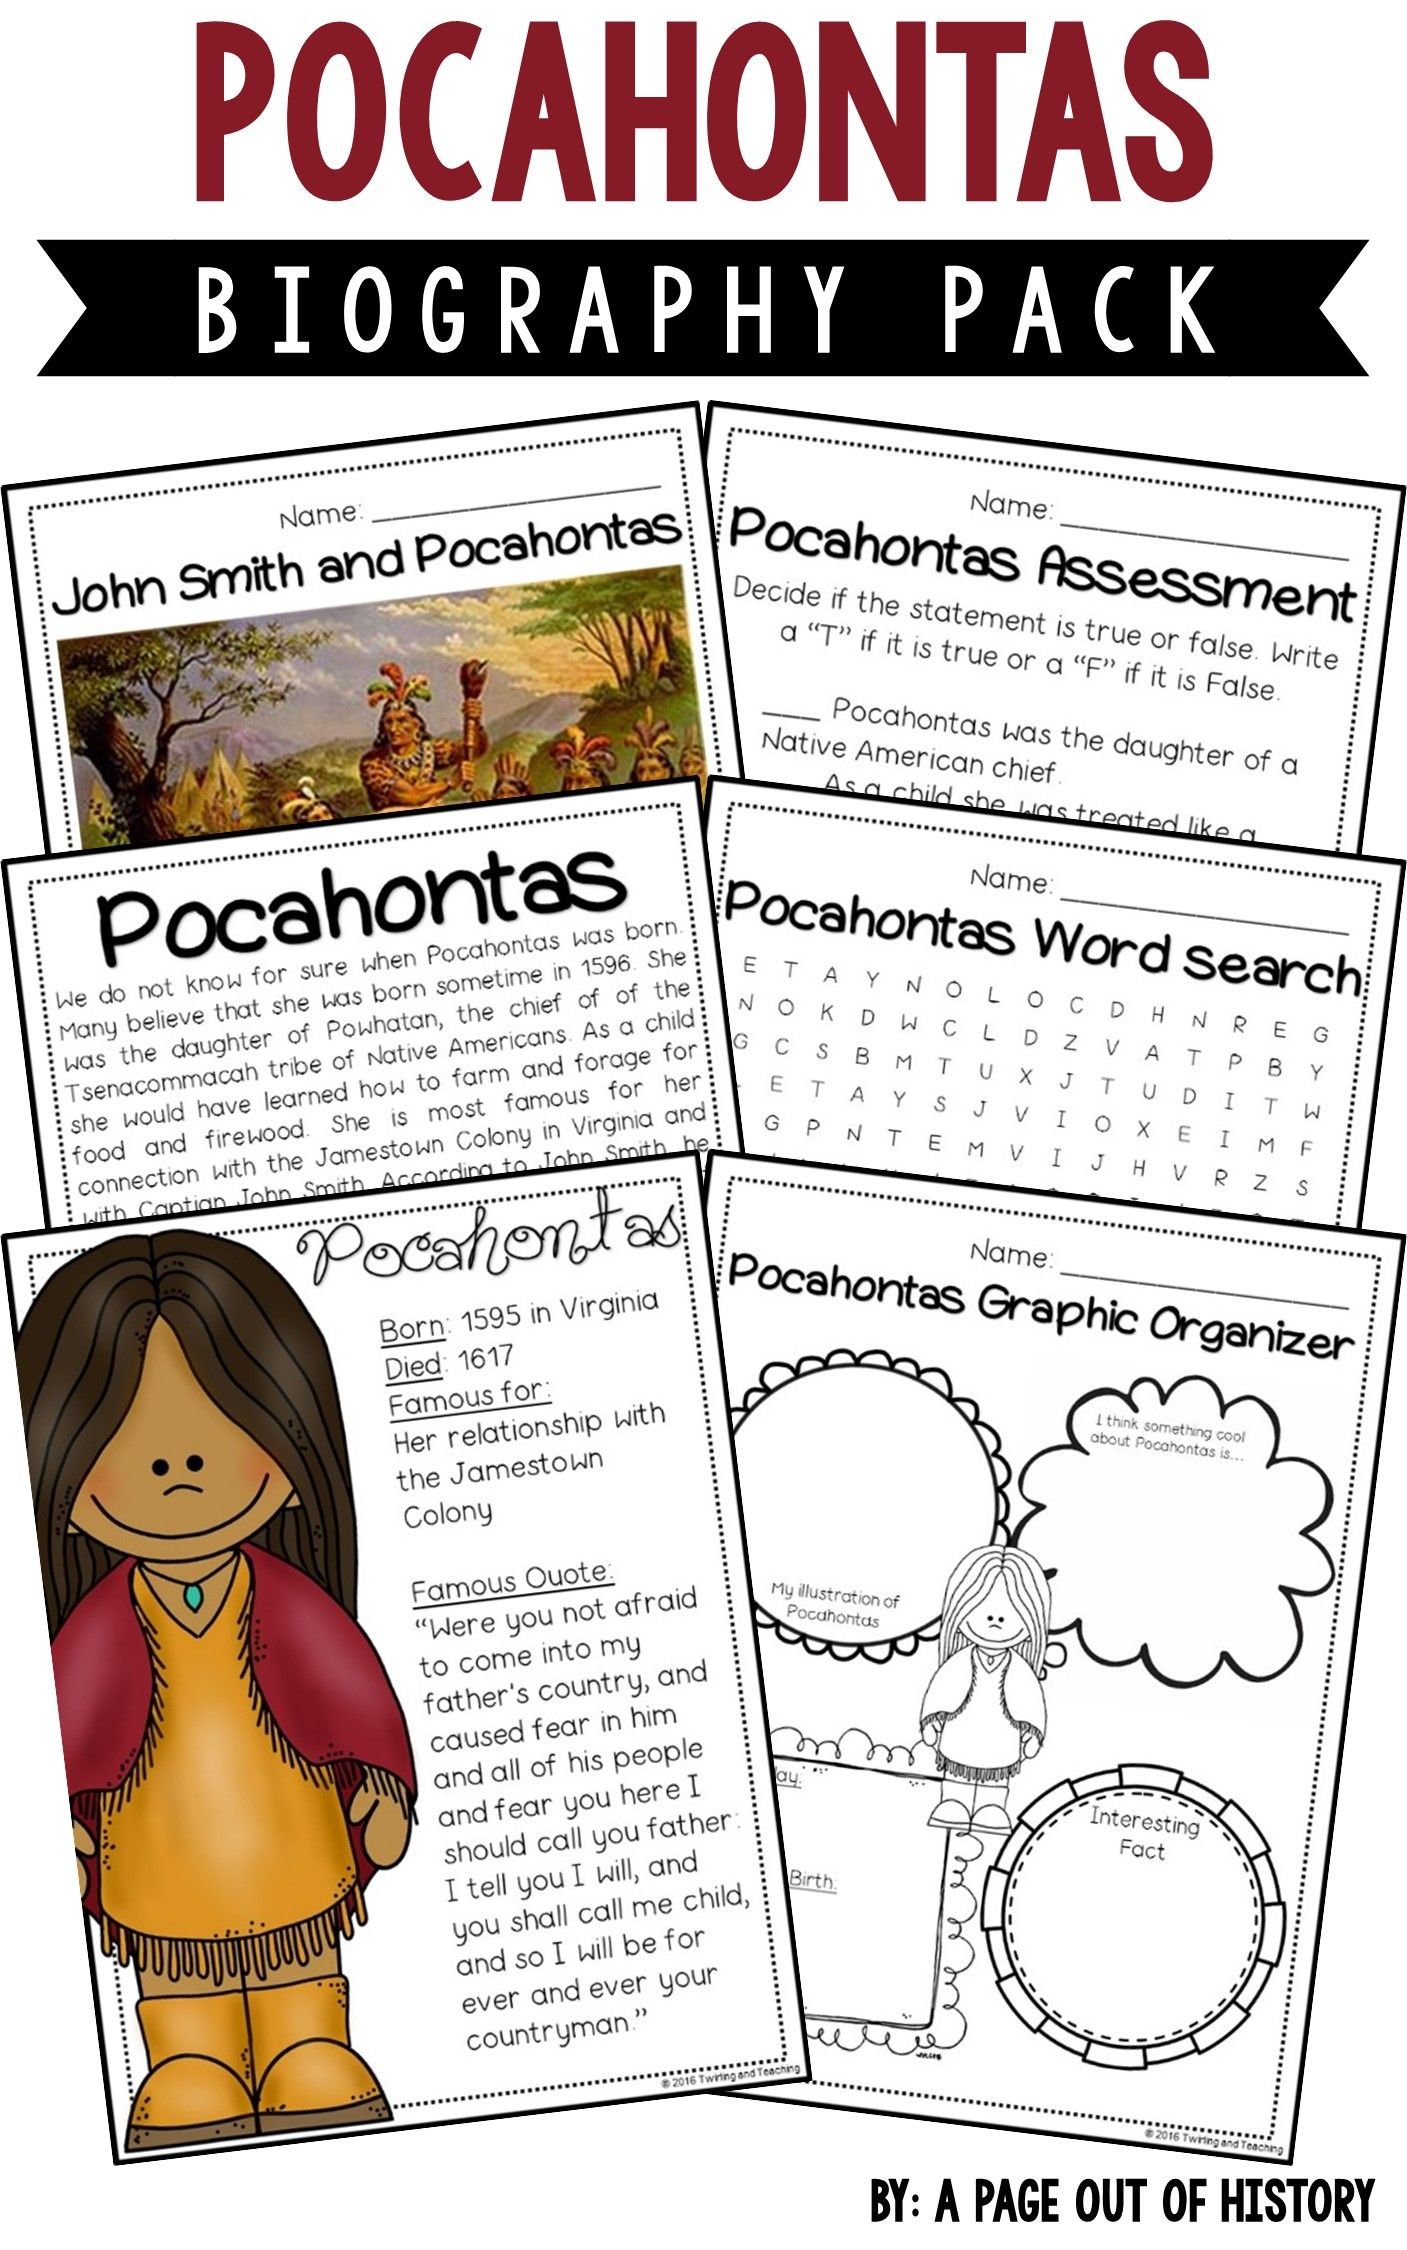 Pocahontas Biography Pack Women S History